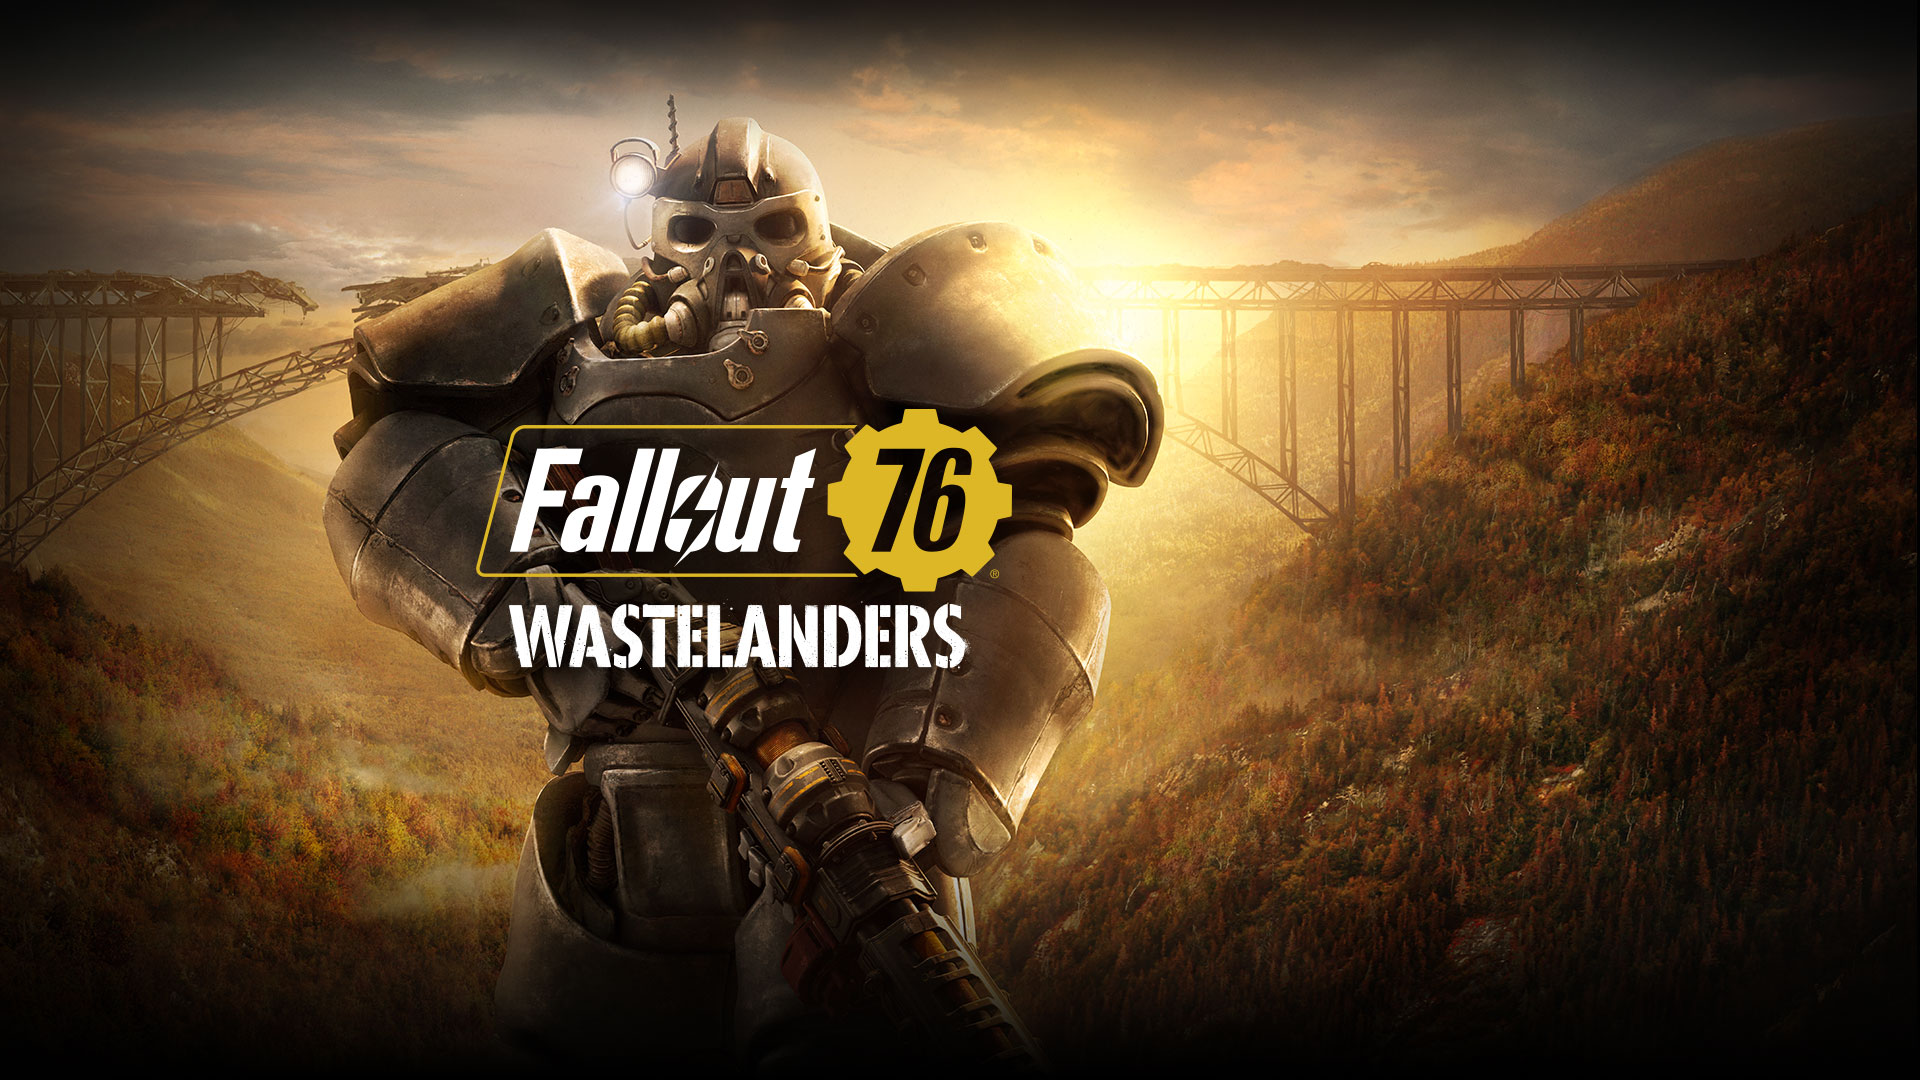 Fallout 76 Wastelanders, A character in Power Armor stands in front of a broken bridge between two hills